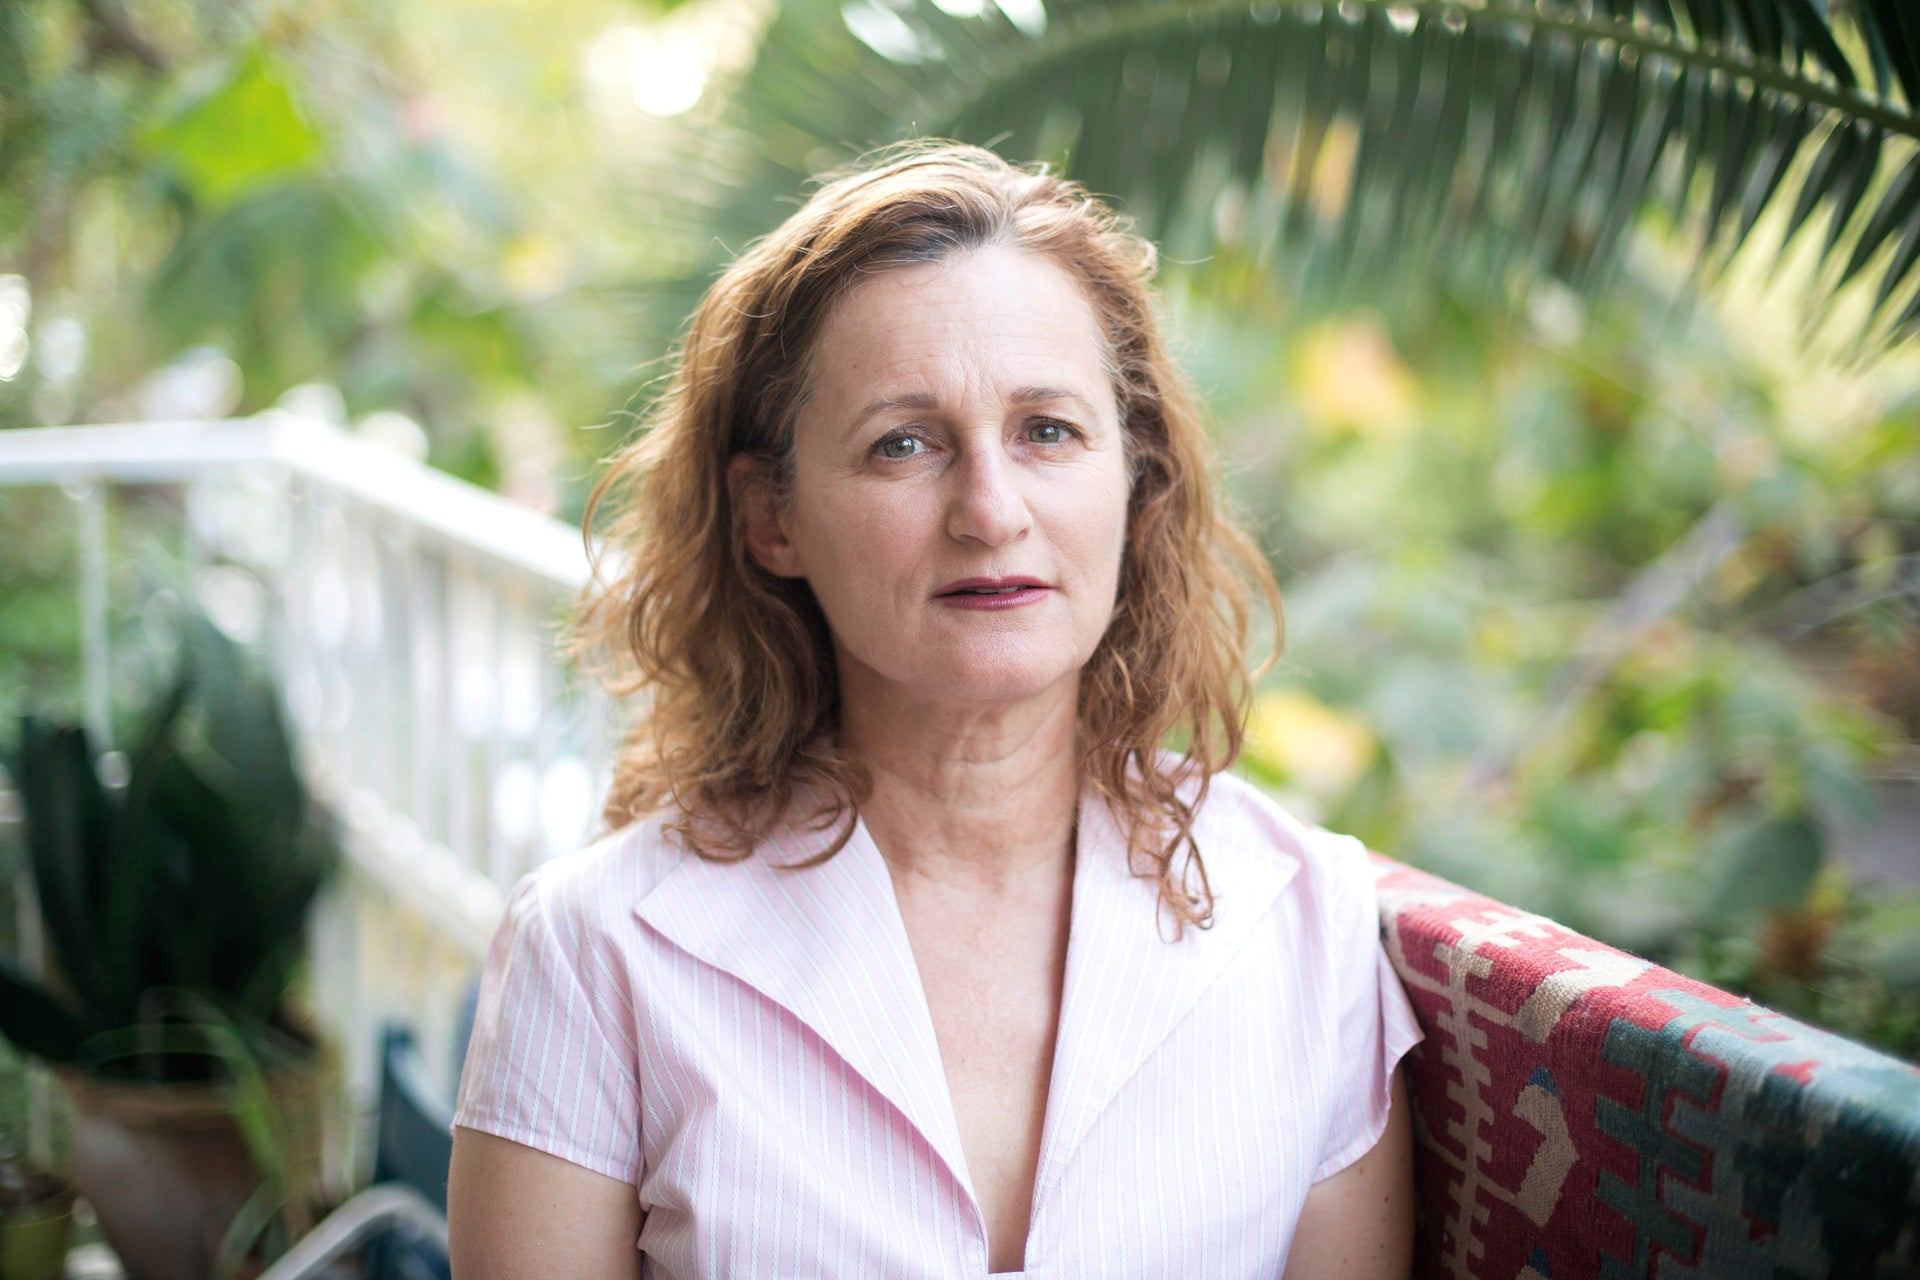 Hadas Ziv, director of public outreach for Physicians for Human Rights Israel and head of the group's ethics committee.